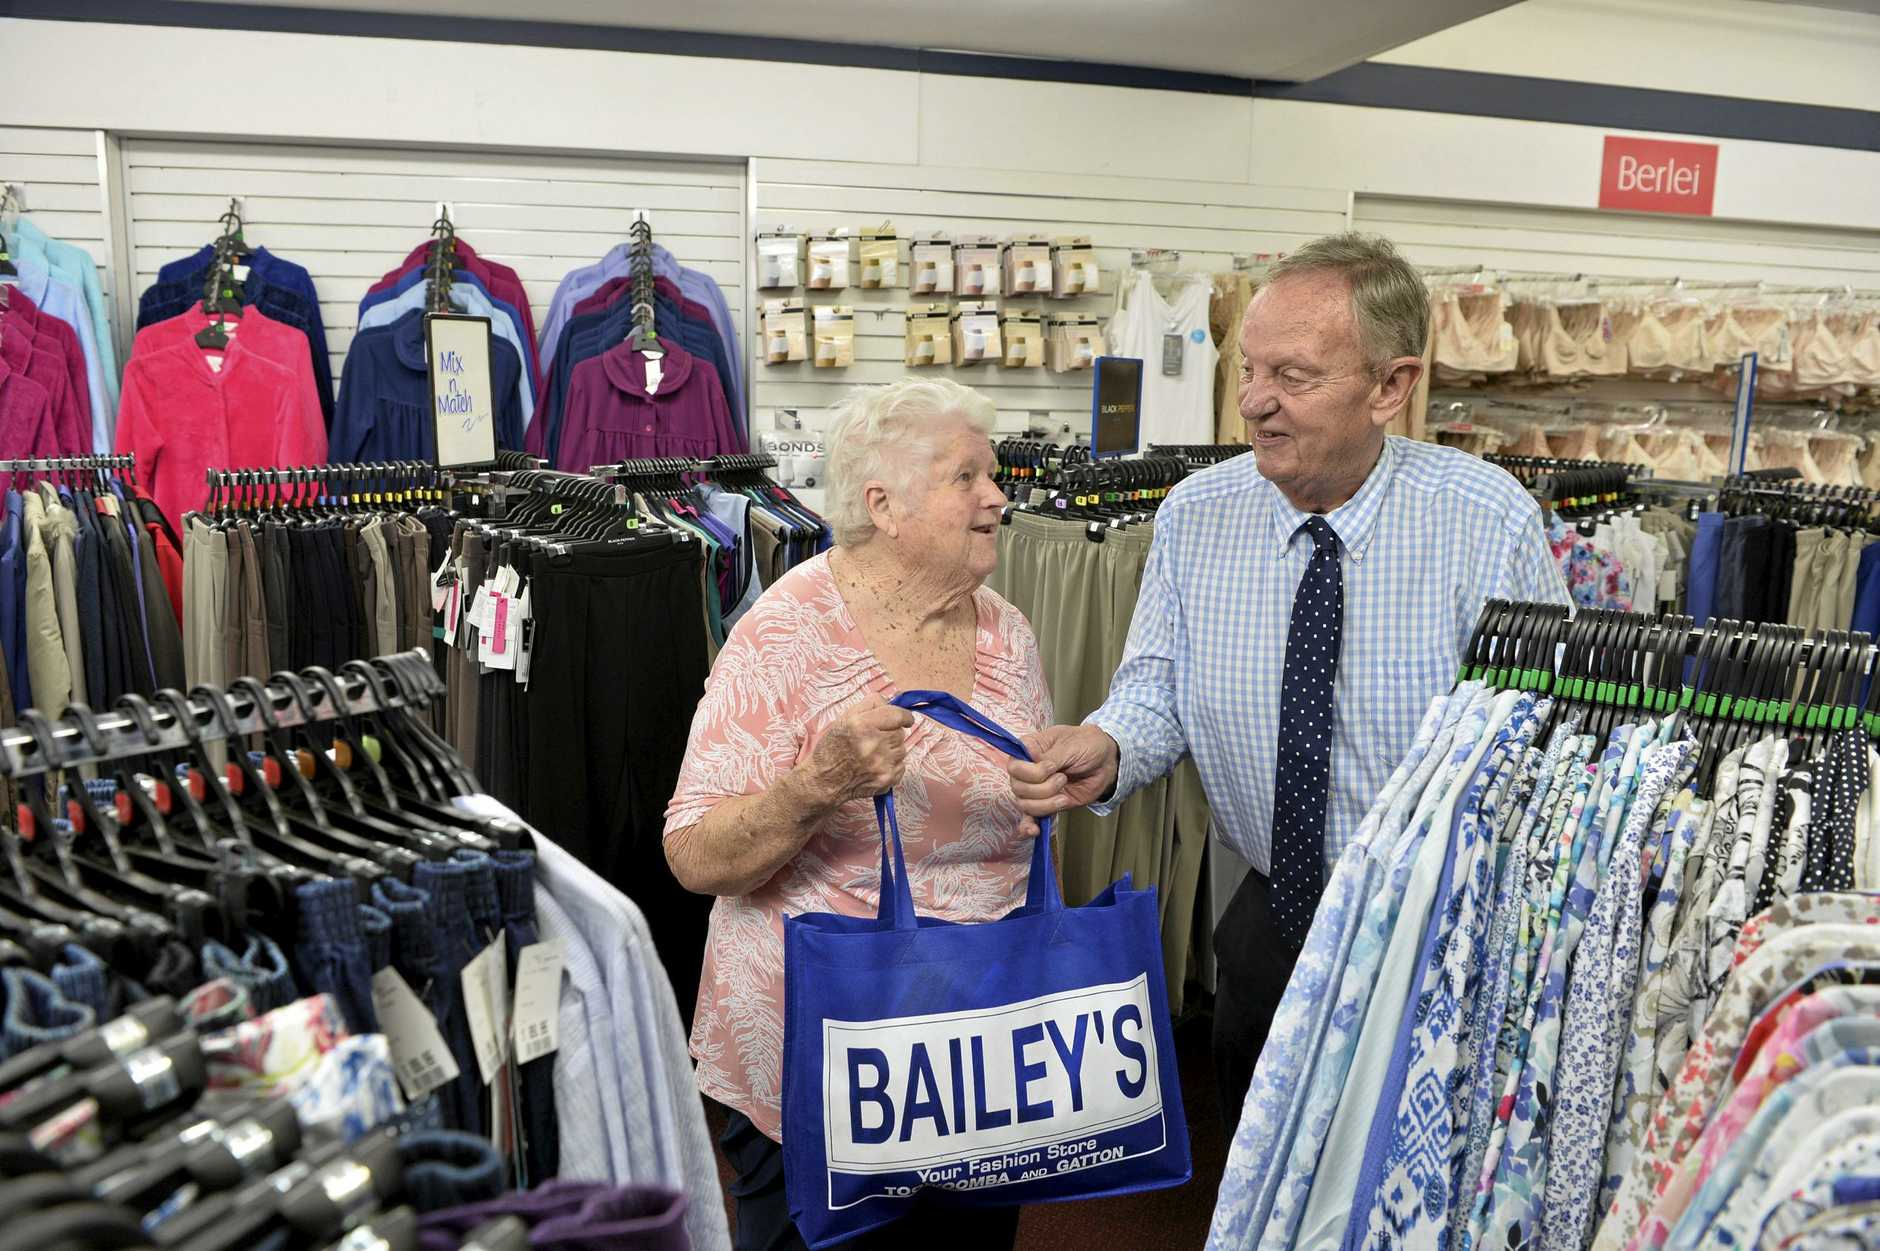 Bev Young has been shopping at   iconic Toowoomba store Bailey's for 65 years. She buys her last purchase with owner Lex Bailey as he announces the business will close, Saturday, January 12, 2019.